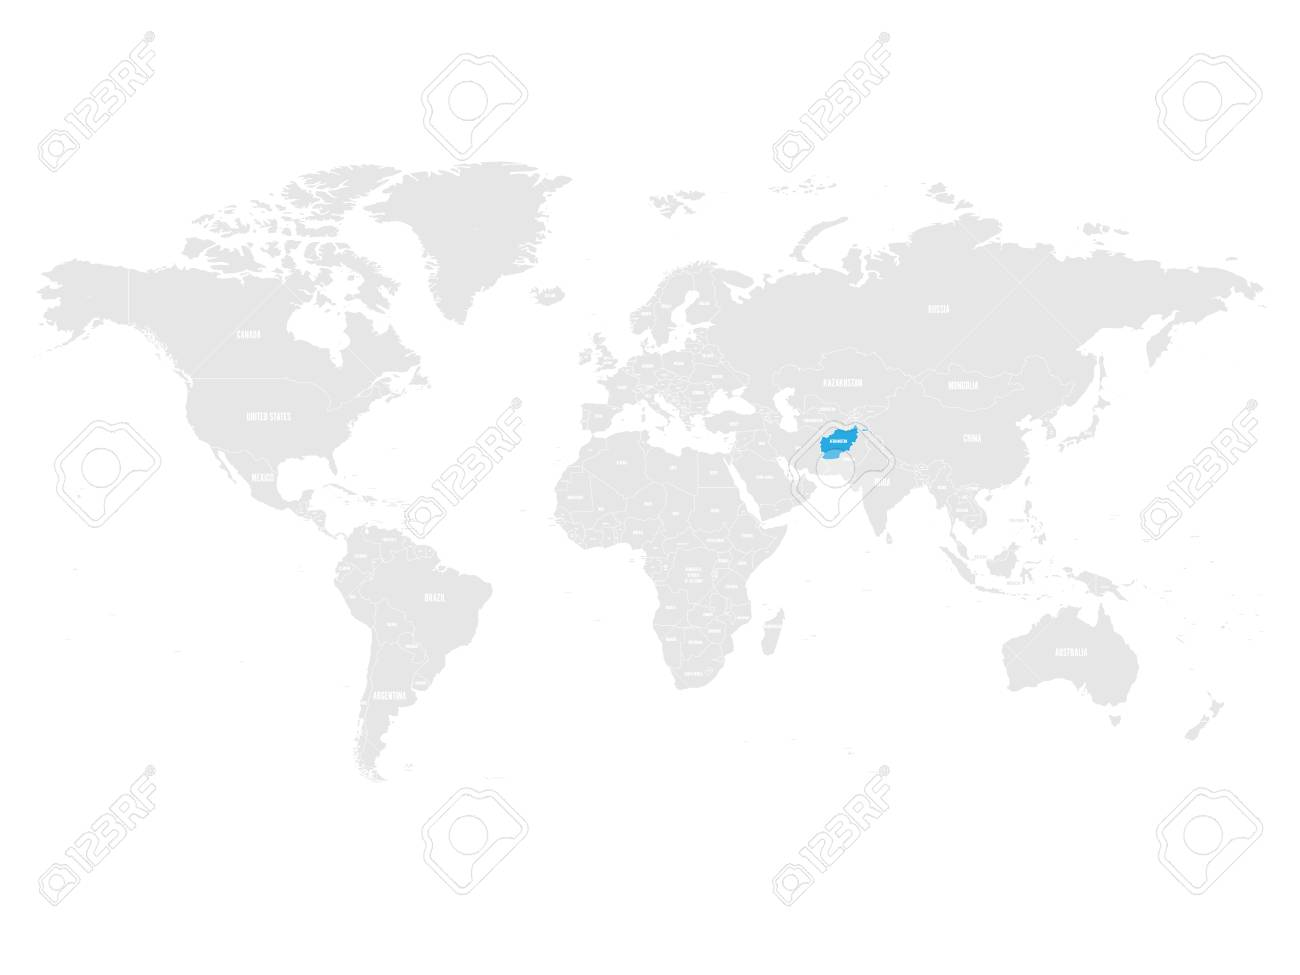 Afghanistan Map Location. Royalty Free Cliparts, Vectors, And Stock ...